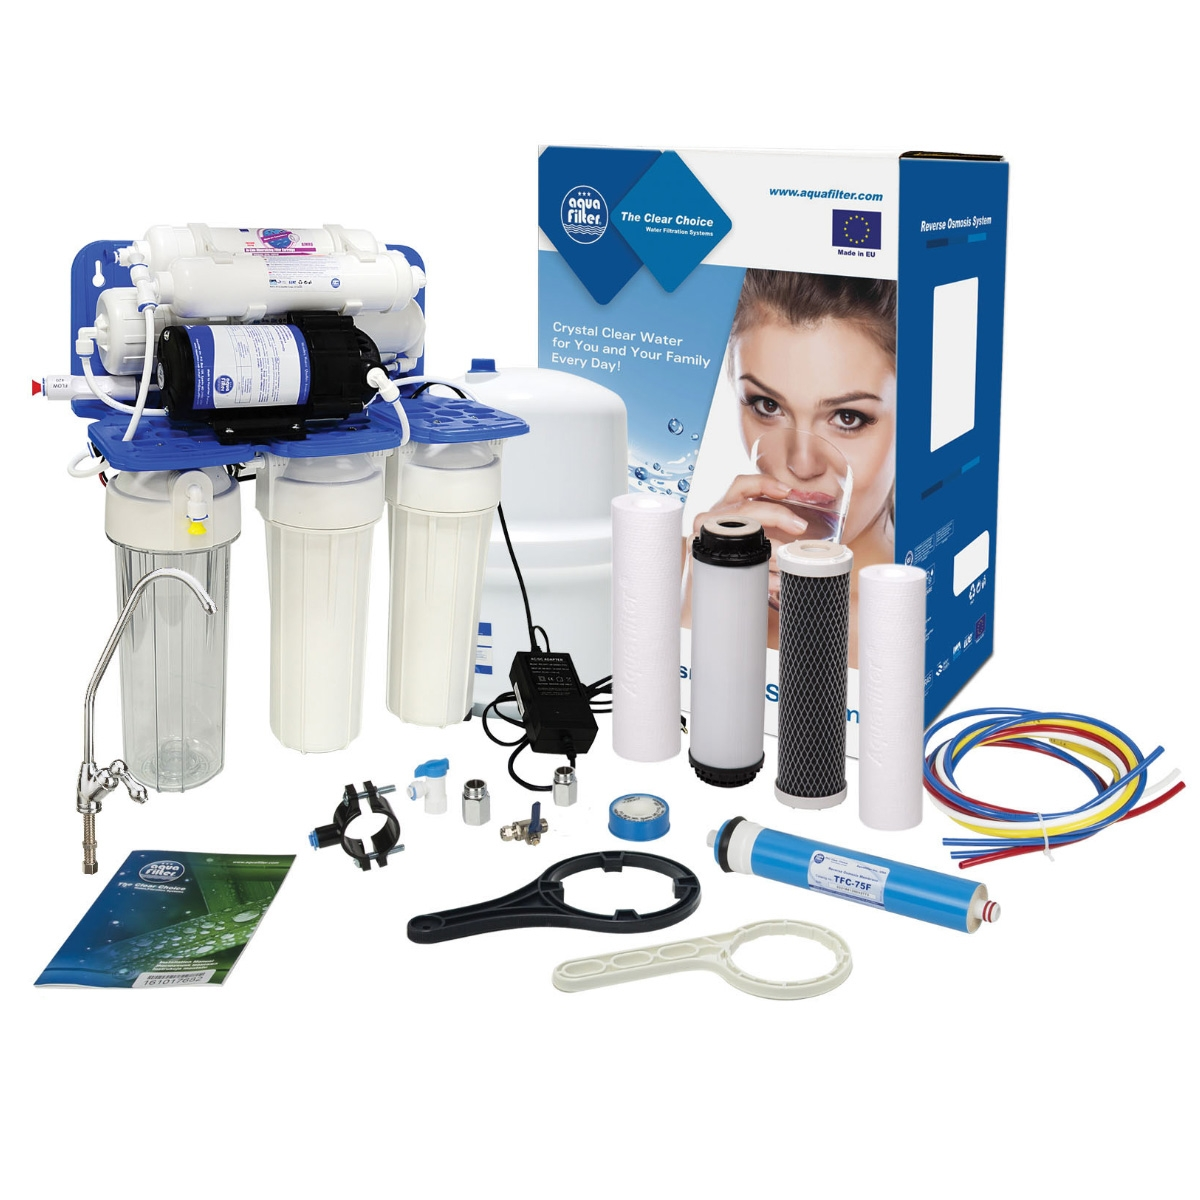 6 Stage Reverse Osmosis Water Filtration System RP65139715